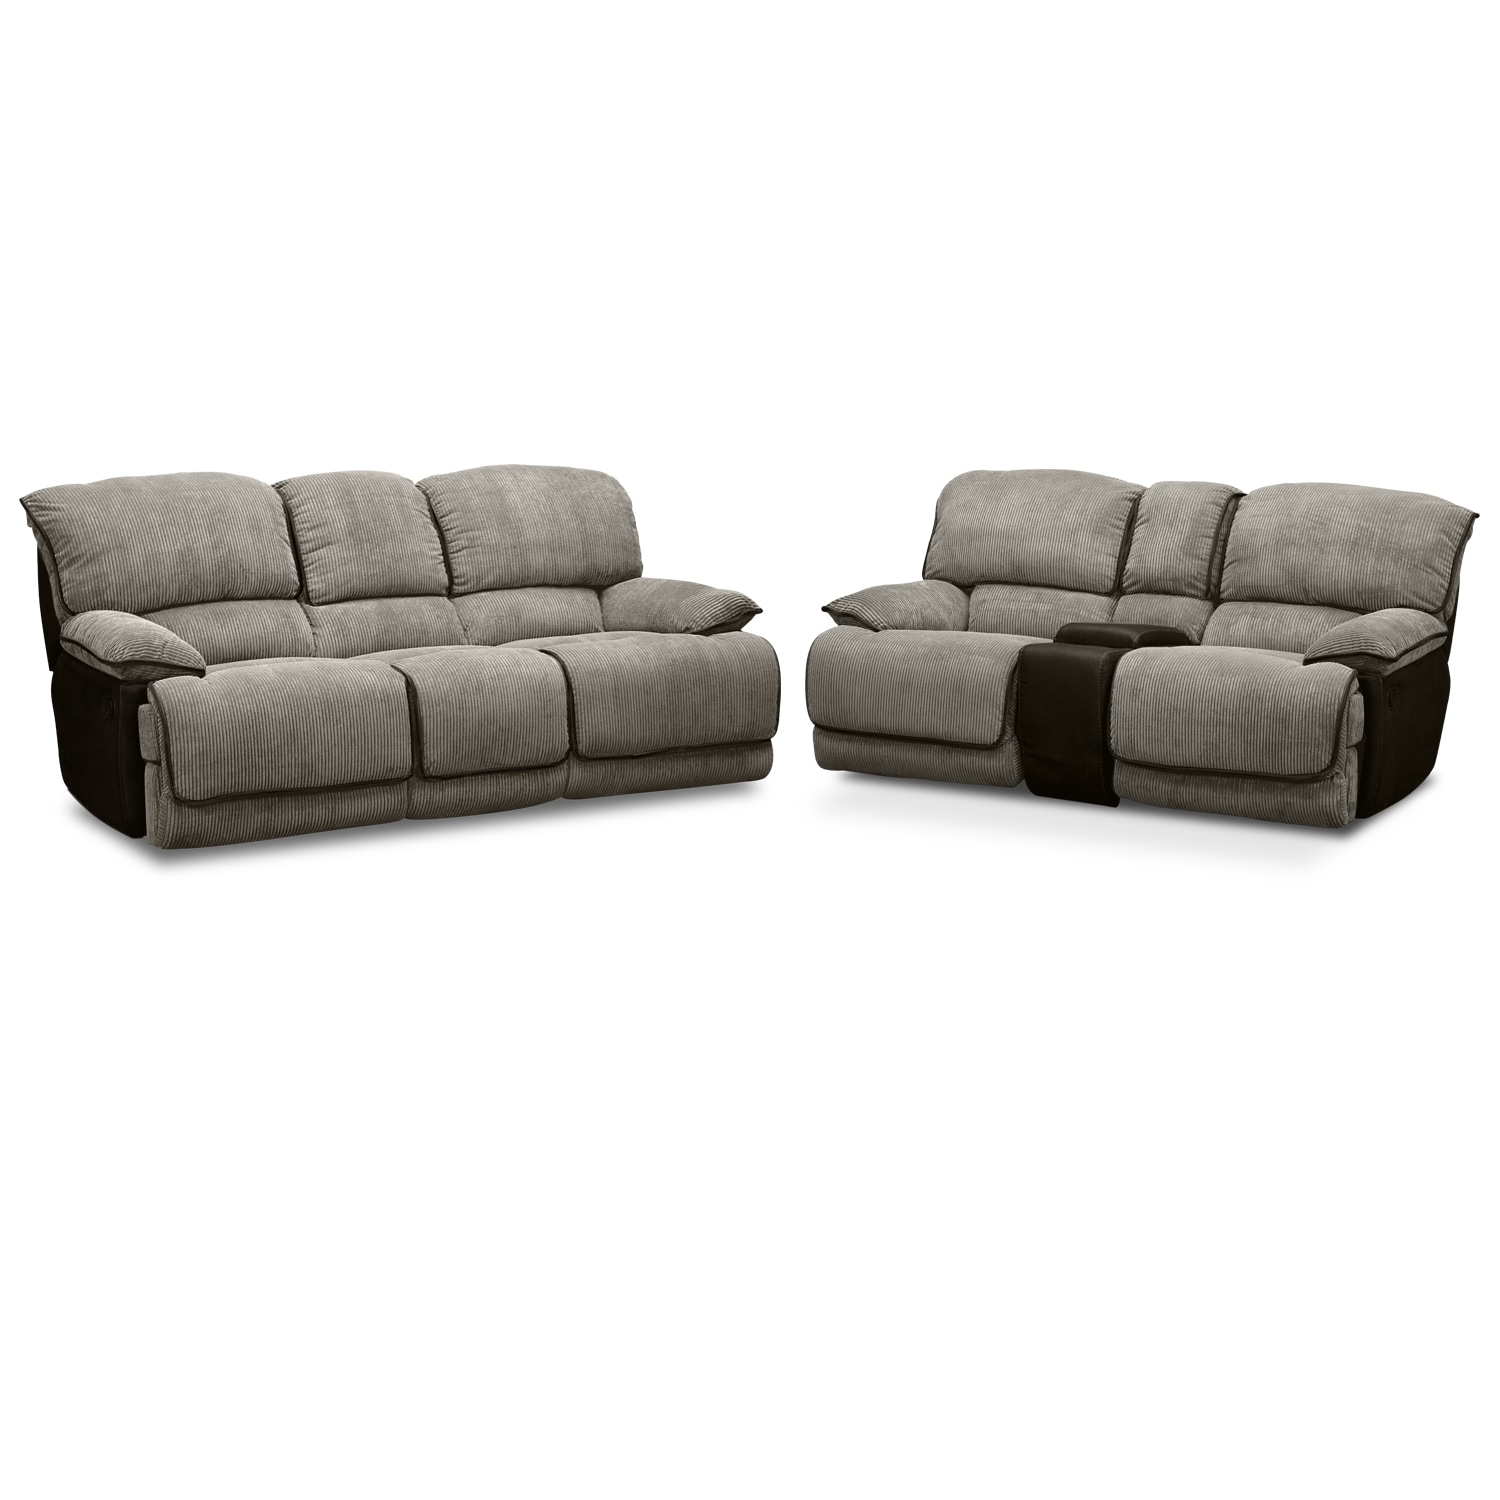 Laguna Reclining Sofa and Gliding Reclining Loveseat Set - Steel